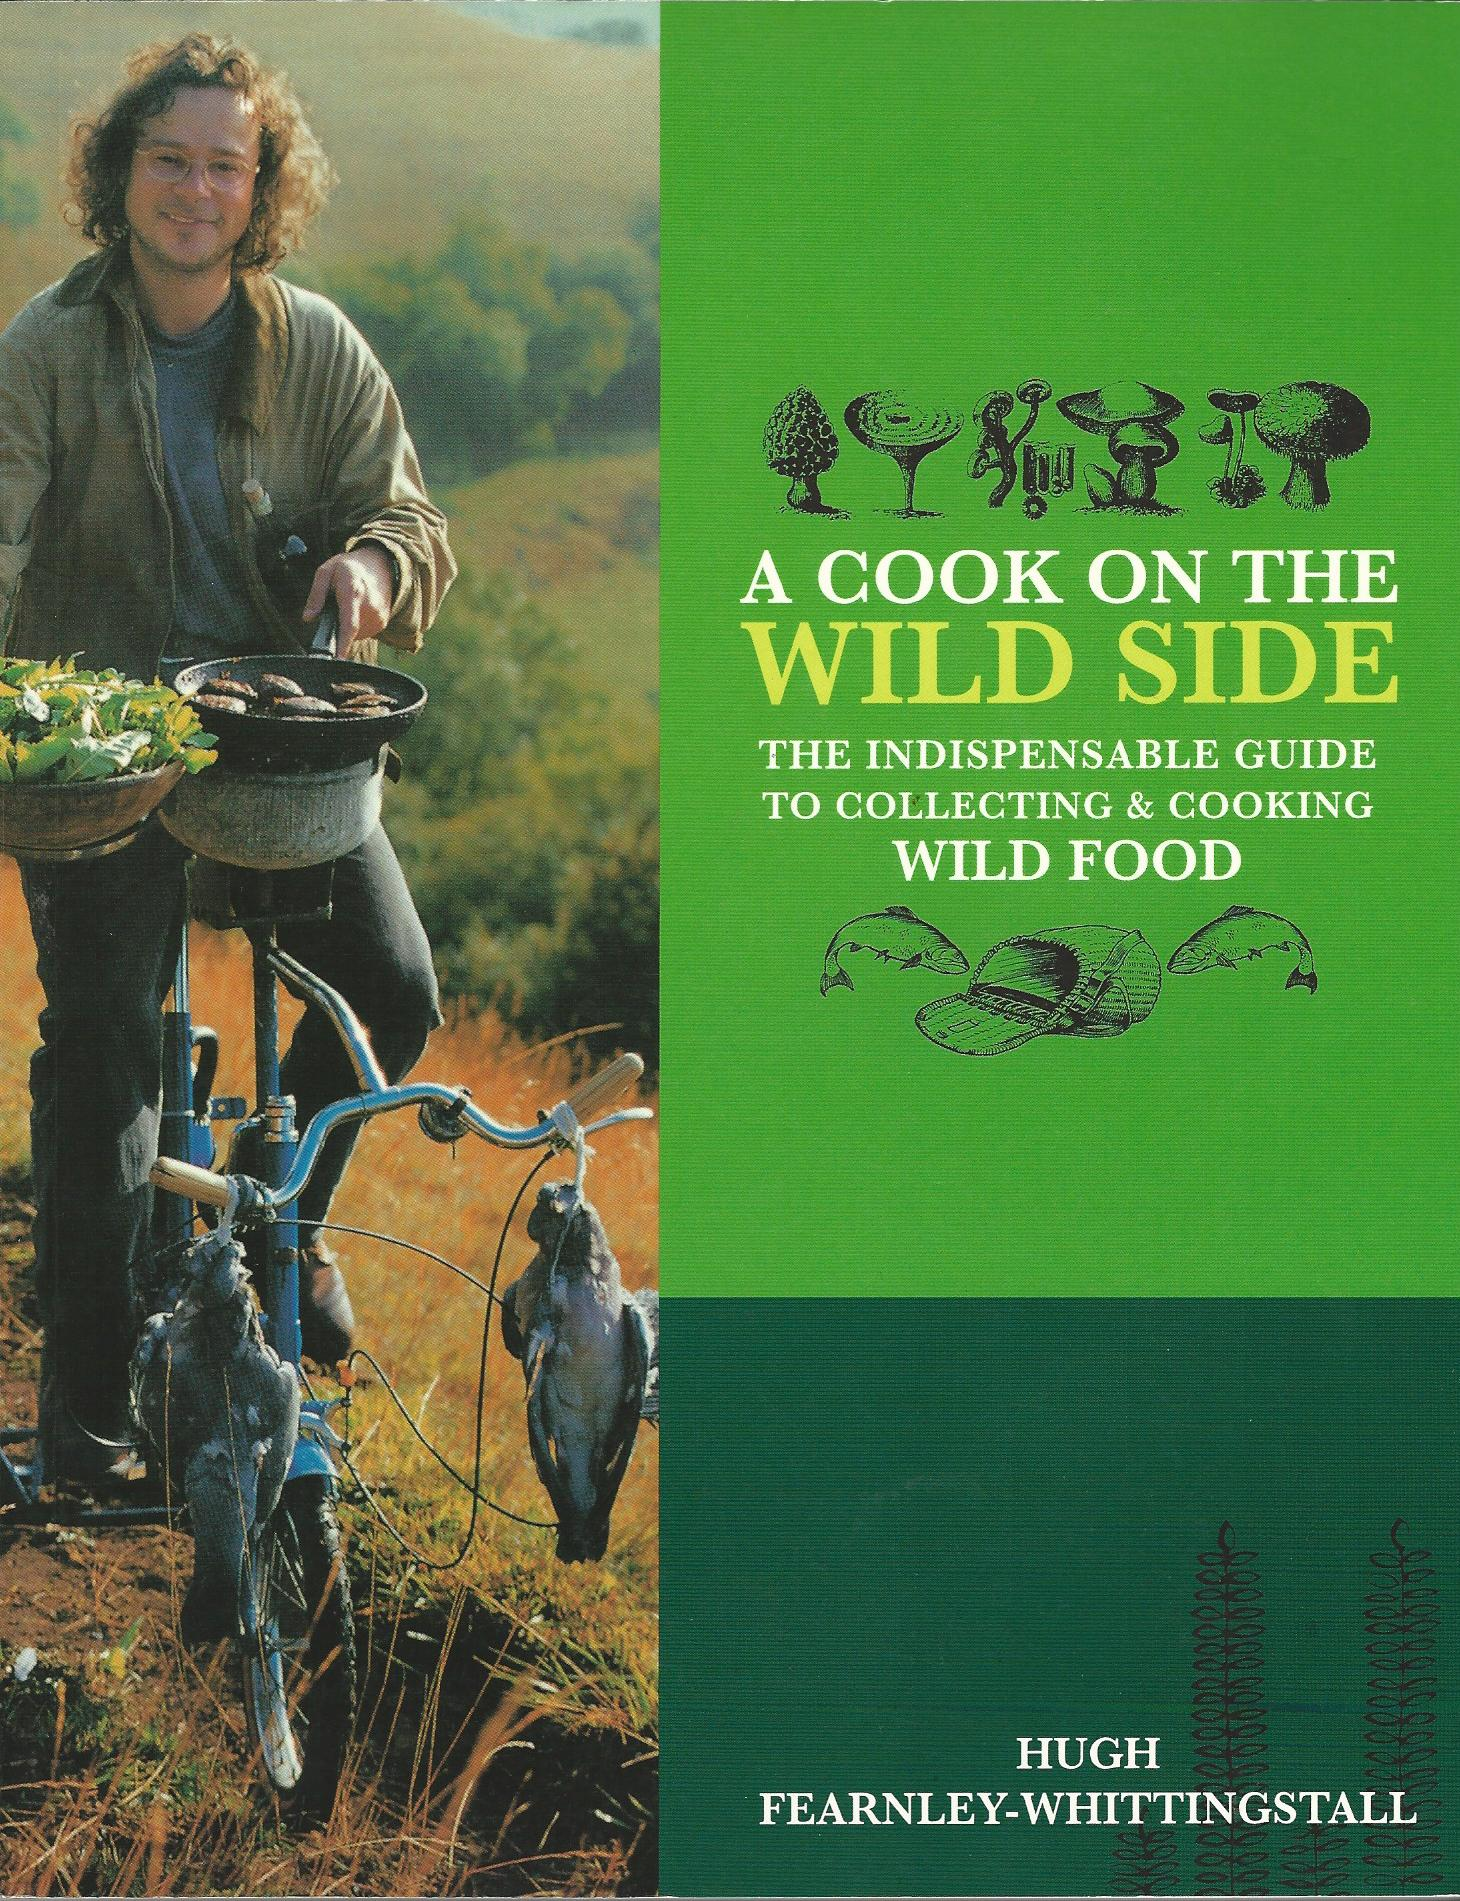 Image for A Cook on the Wild Side: The Indispensable Guide to Collecting & Cooking Wild Food.